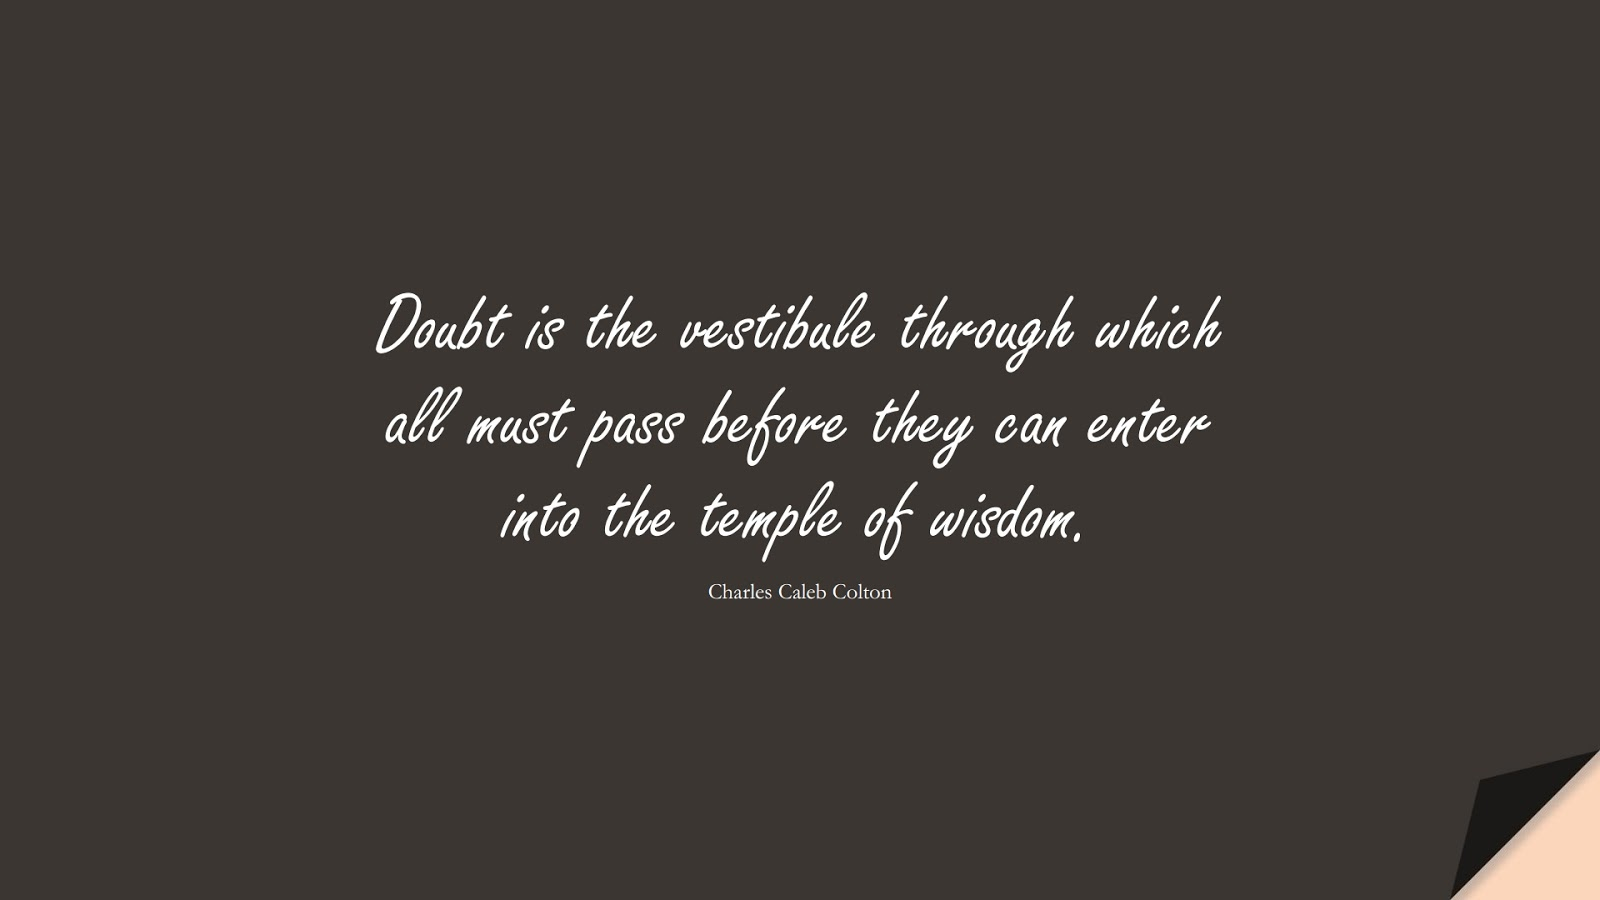 Doubt is the vestibule through which all must pass before they can enter into the temple of wisdom. (Charles Caleb Colton);  #WordsofWisdom